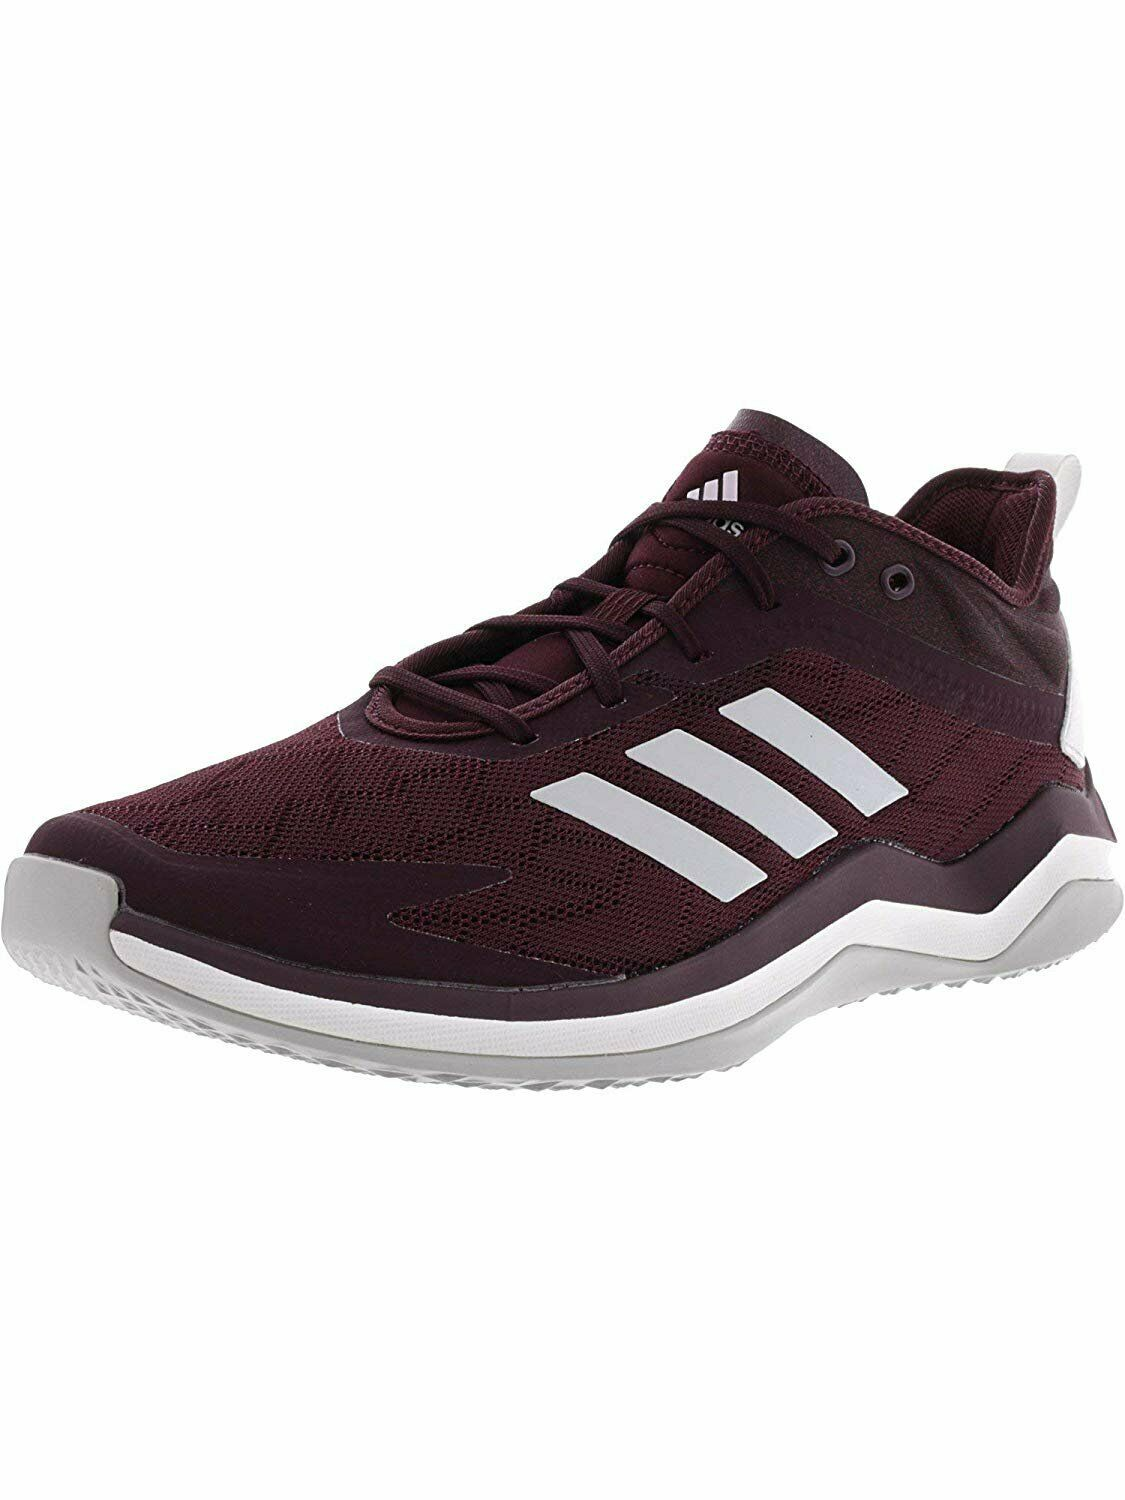 Adidas Speed Trainer 4 Men's Baseball shoes